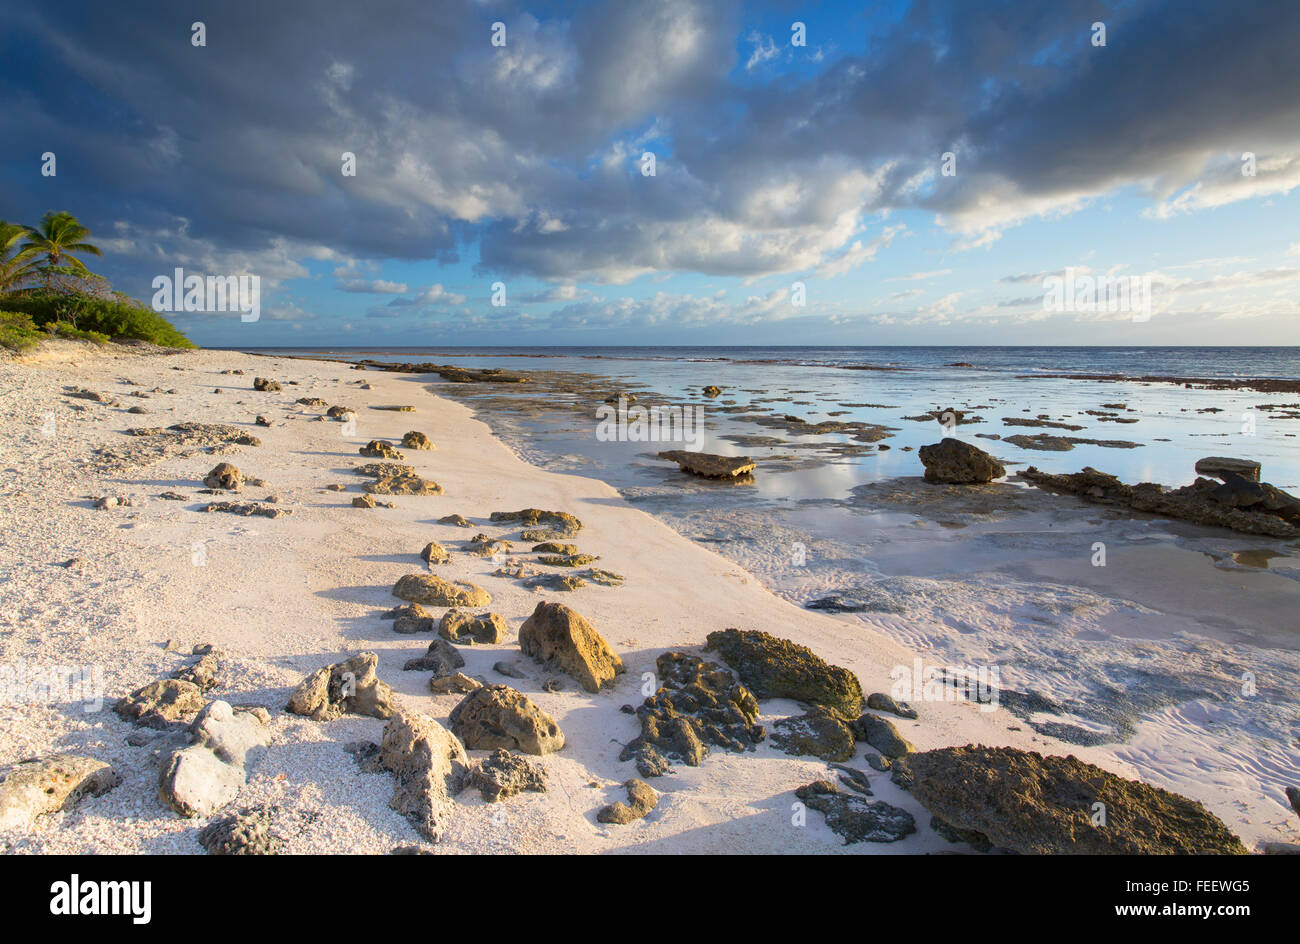 Beach at sunrise, Fakarava, Tuamotu Islands, French Polynesia - Stock Image